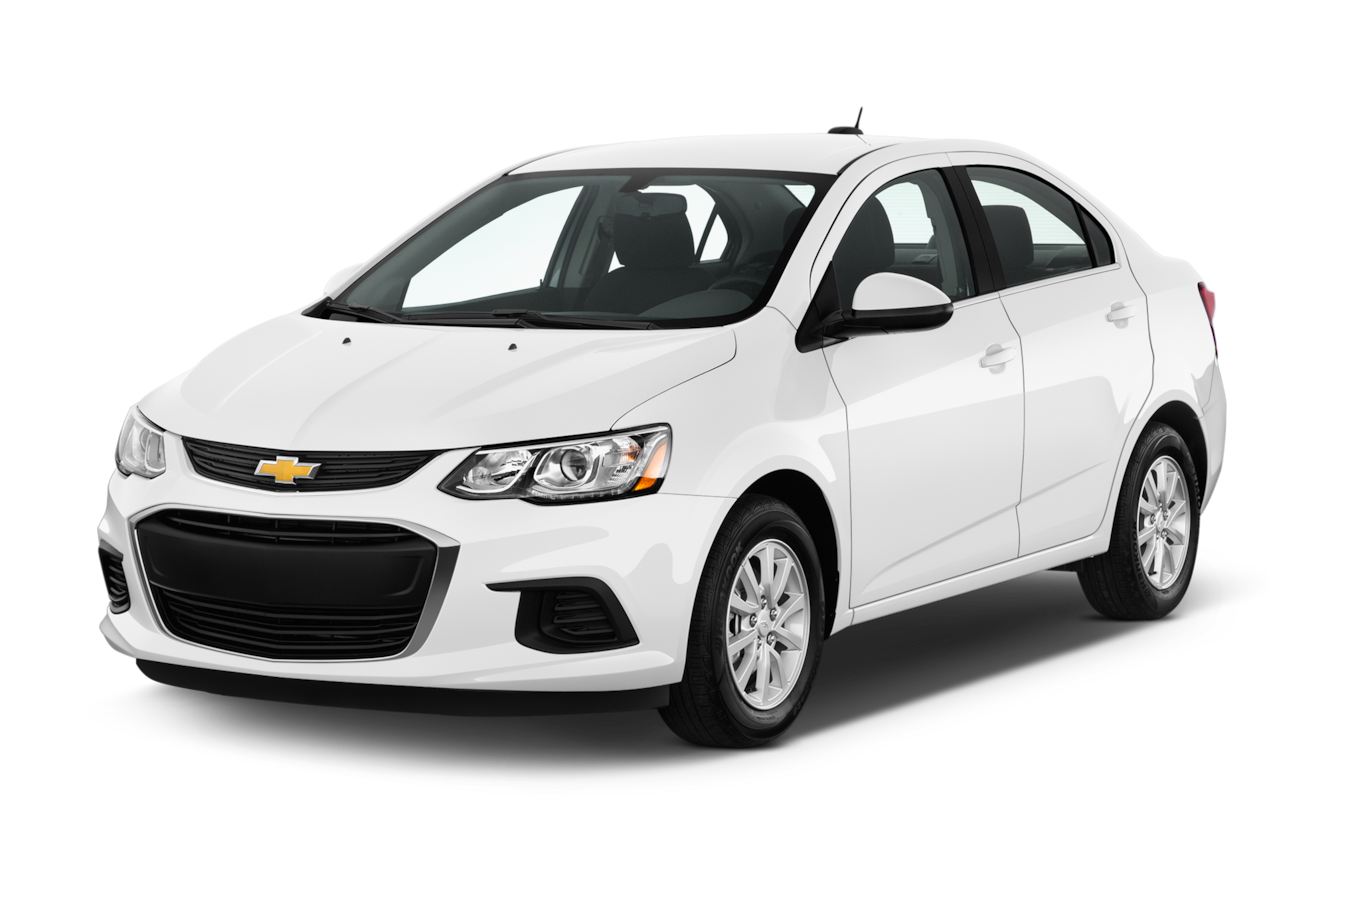 9 Moments To Remember From Chevrolet Cars Chevrolet Sonic Chevrolet Aveo Chevrolet